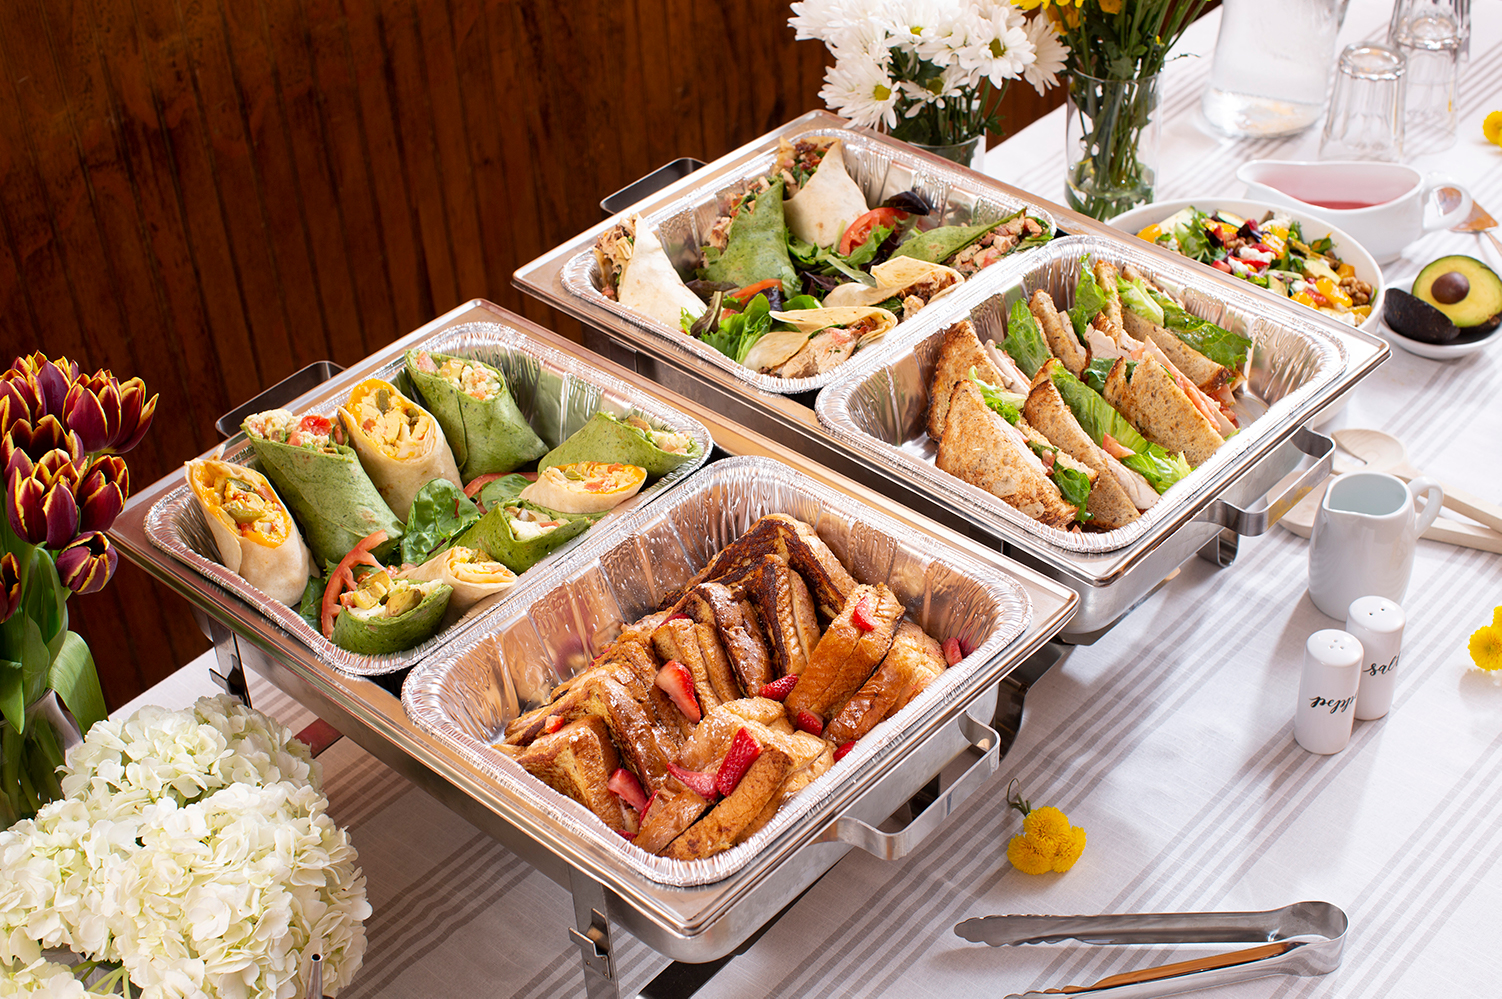 Catering spread with french toast, sandwiches, and wraps